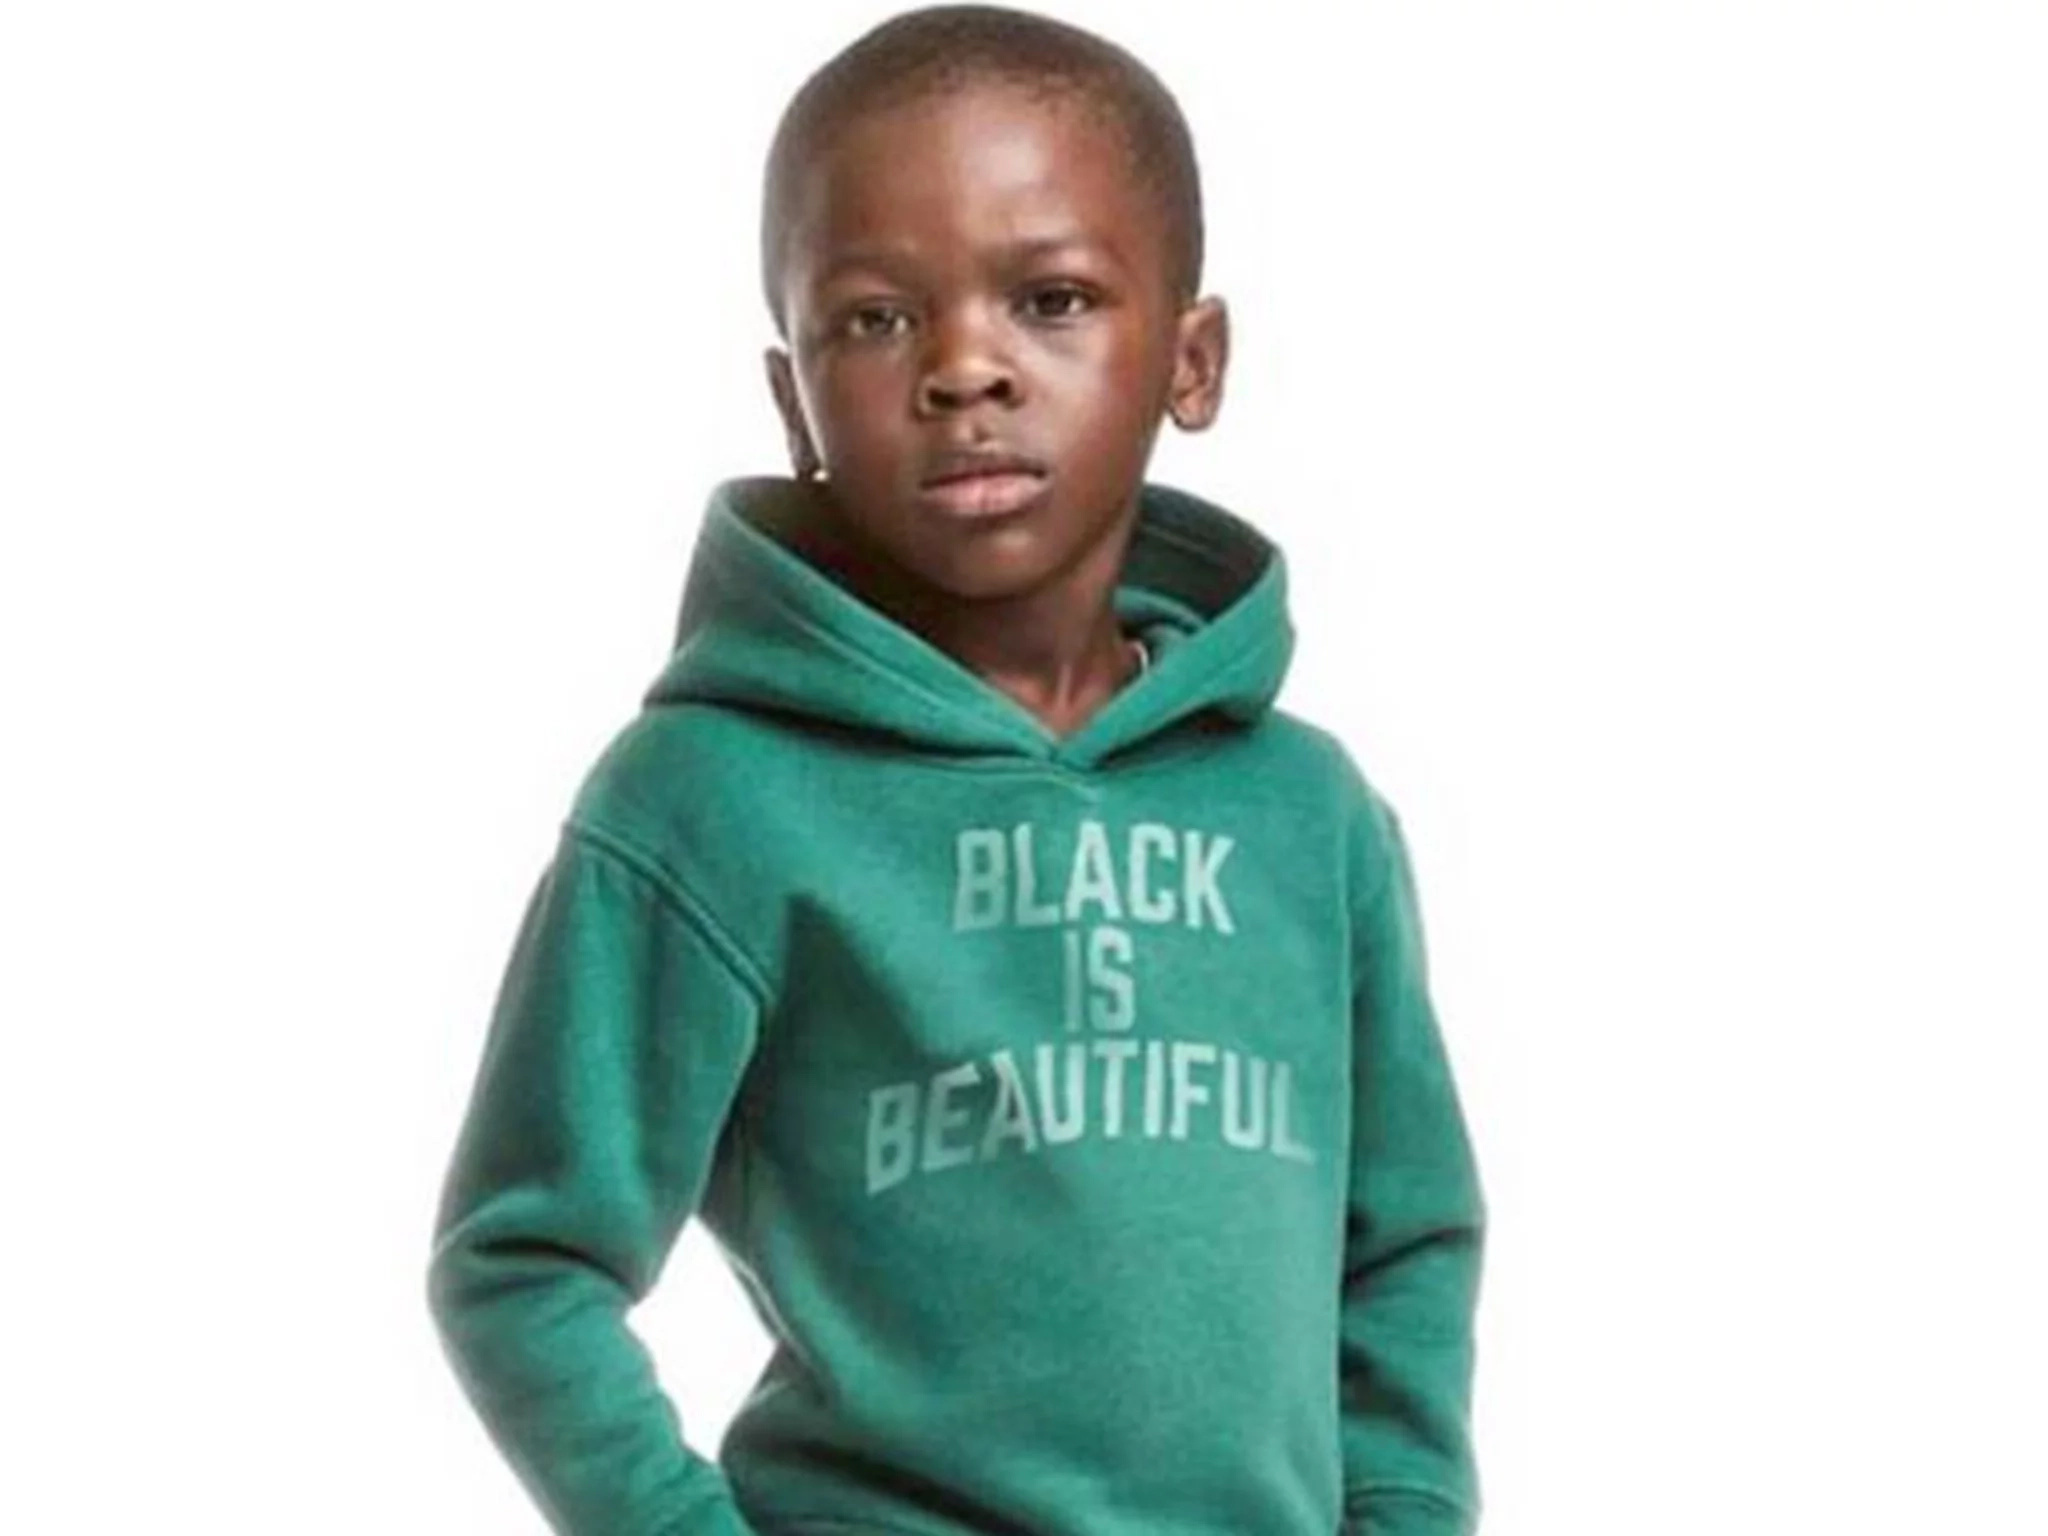 Mother of black child in 'racist' H&M ad speaks out